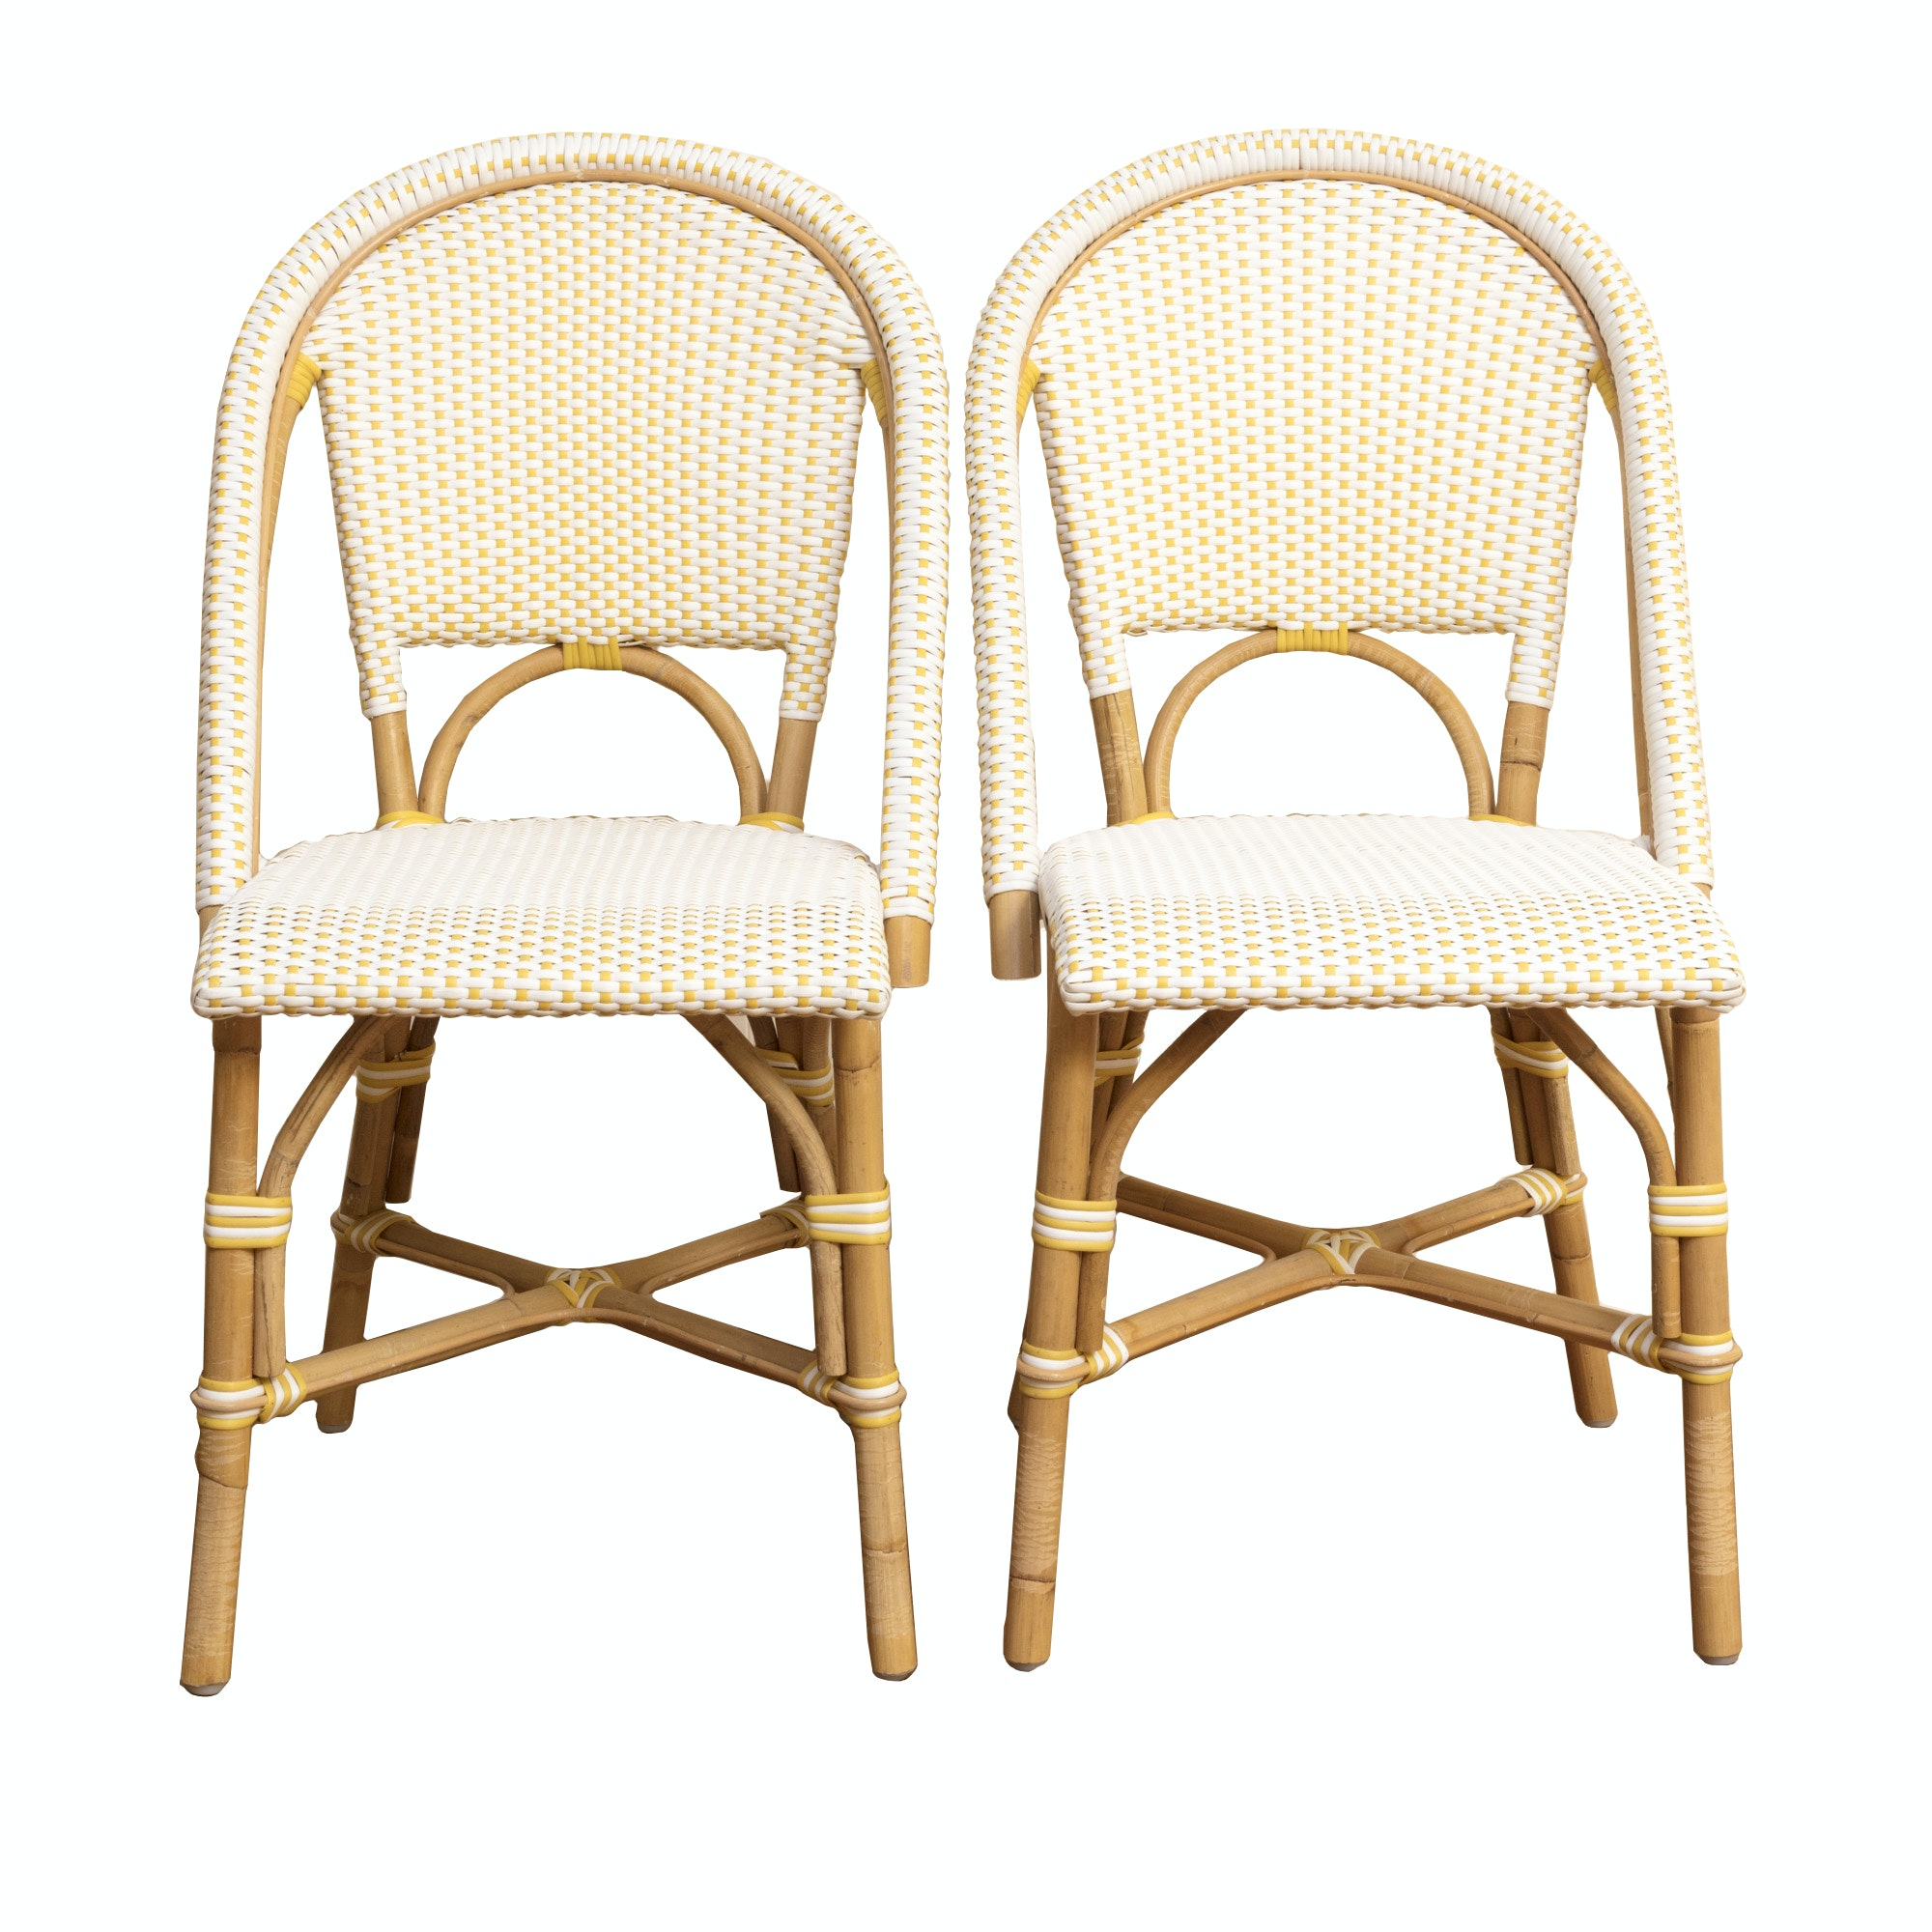 Pair of Faux Bamboo Patio Chairs